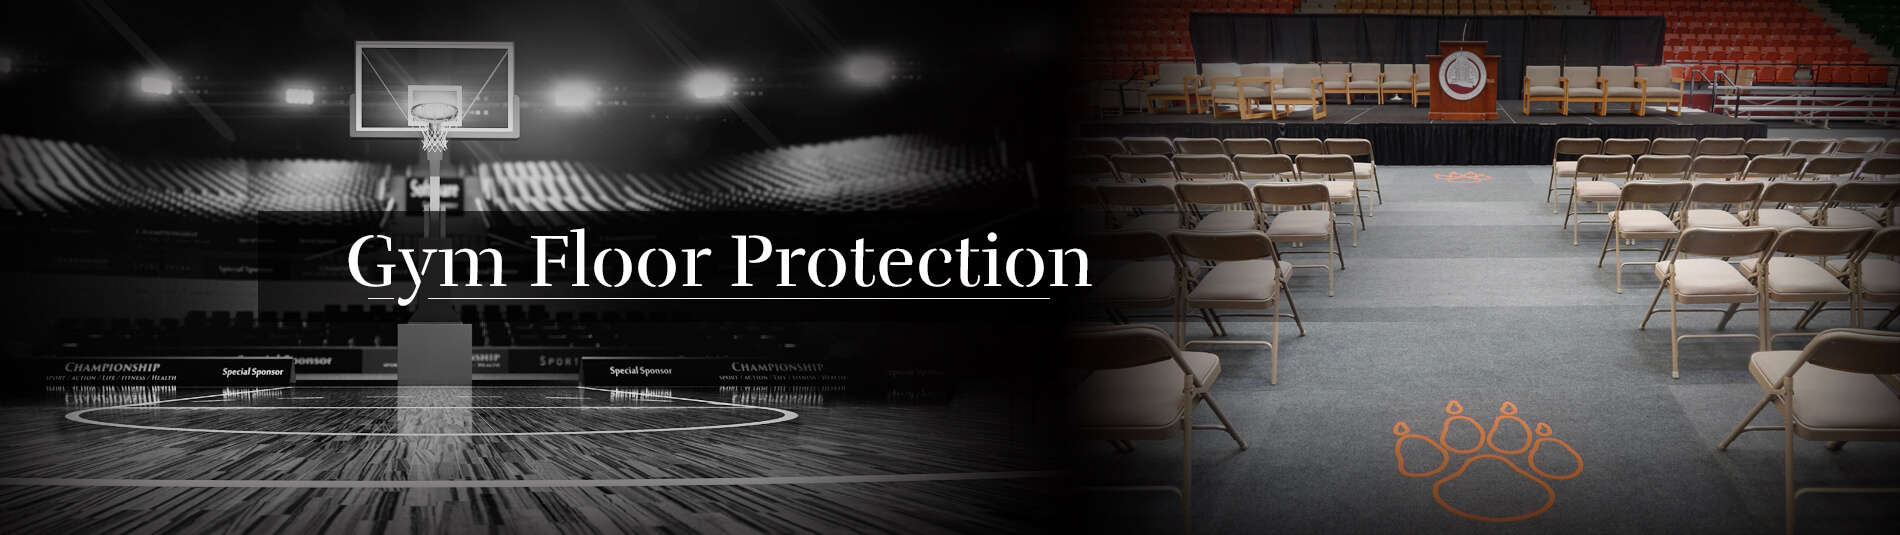 4 Gym Floor Protection banner